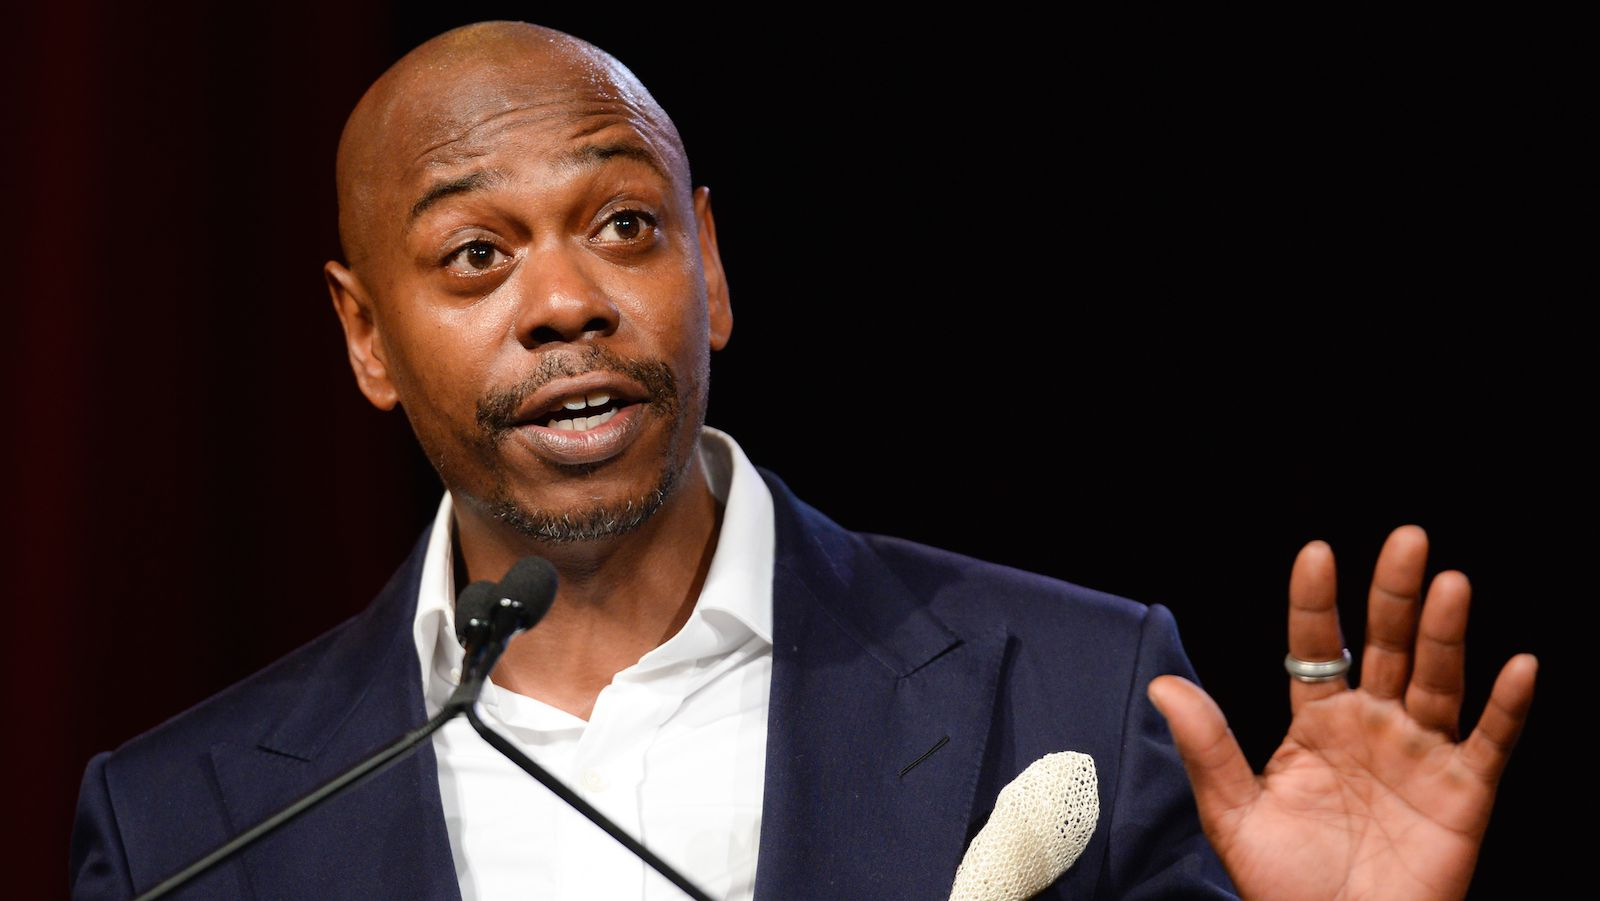 the comedy of dave chappelle critical essays Furthermore, dave chappelle is known to often sit on a stool and work a stream of consciousness style of comedy in his stand-up shows, sometimes going for many hours, a characteristic often absent in most stand-up shows.